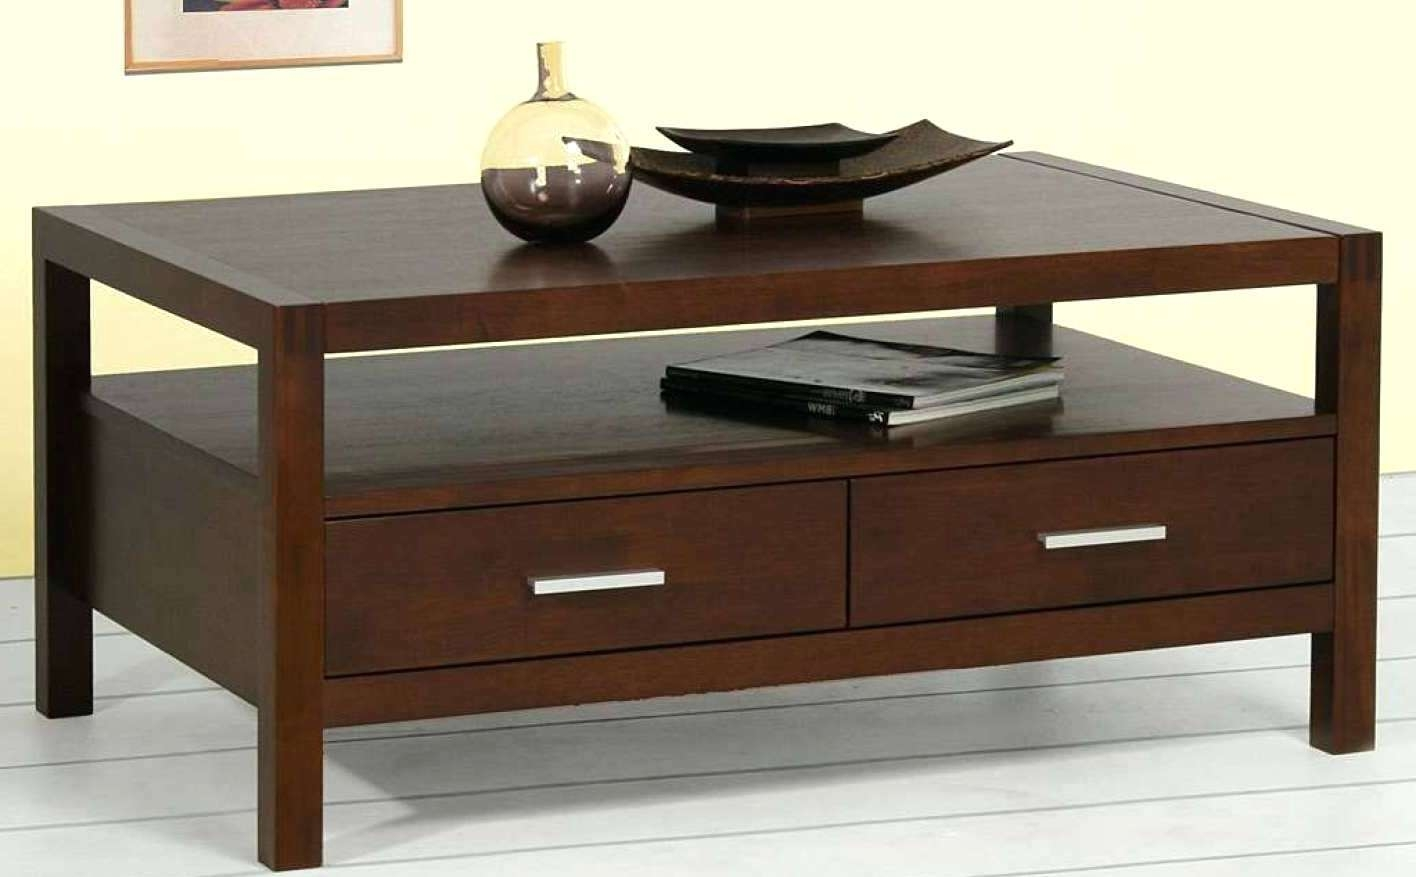 Low Coffee Table With Storage Large Coffee Table With Drawers Buethe Org